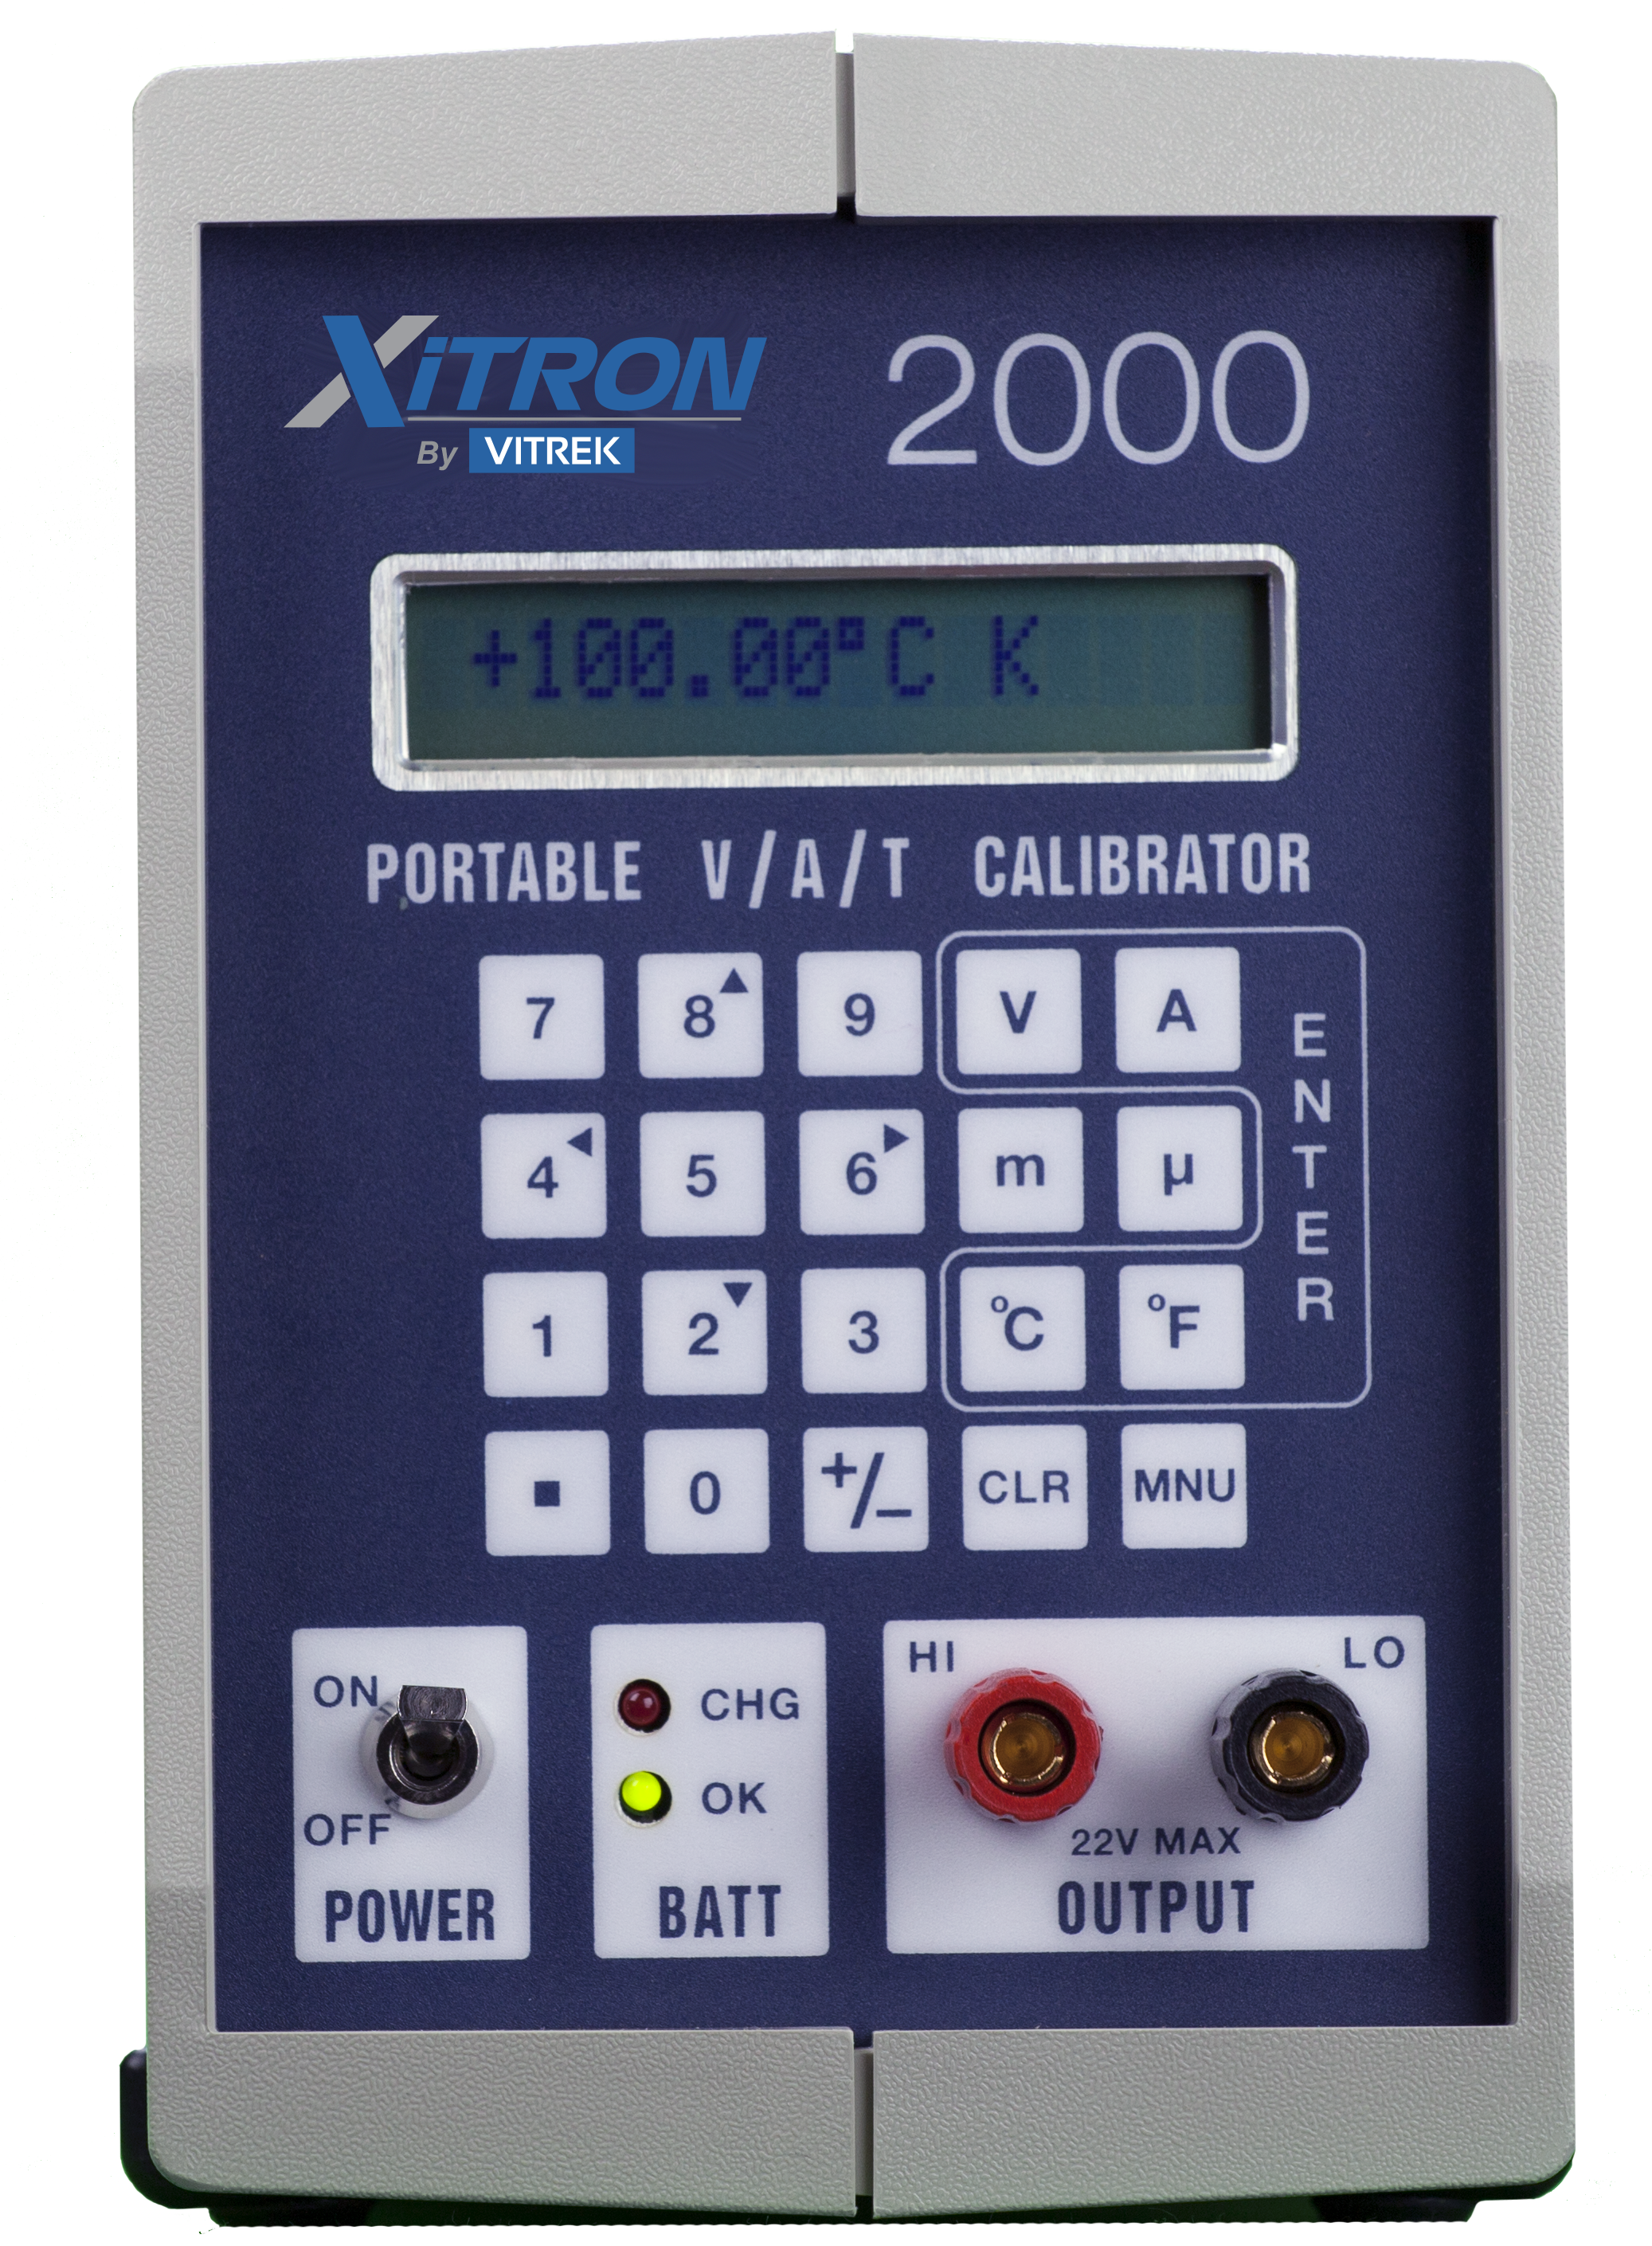 vitrek xitron 2000 portable calibration instrument front